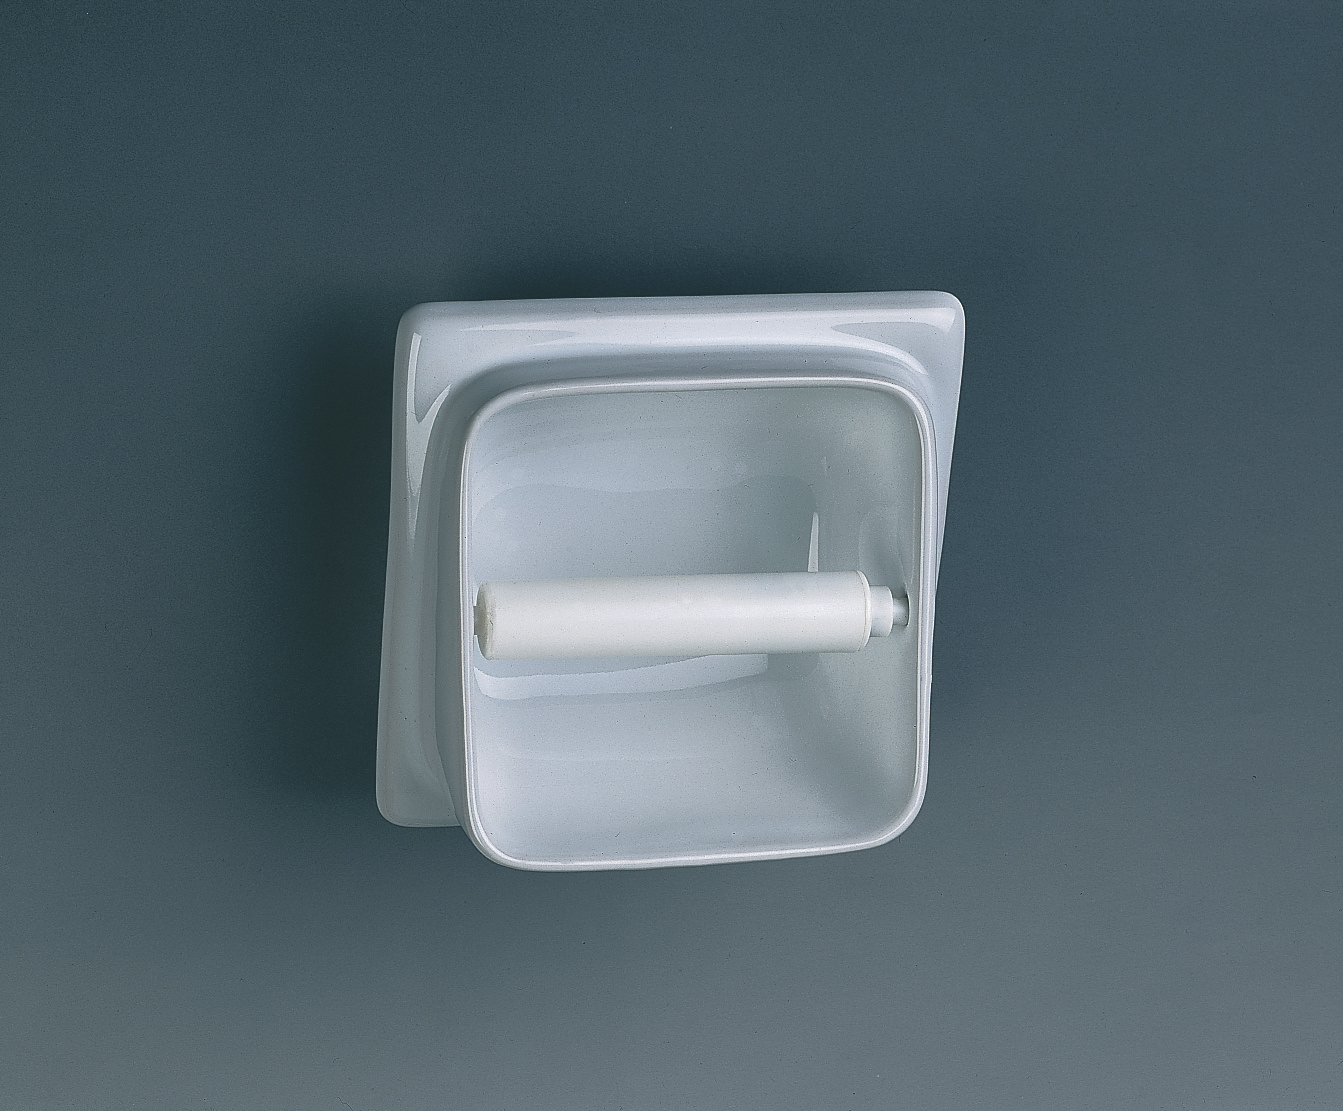 Twyford built in semi recessed toilet roll holder vc9806wh - Recessed toilet roll holder ceramic ...